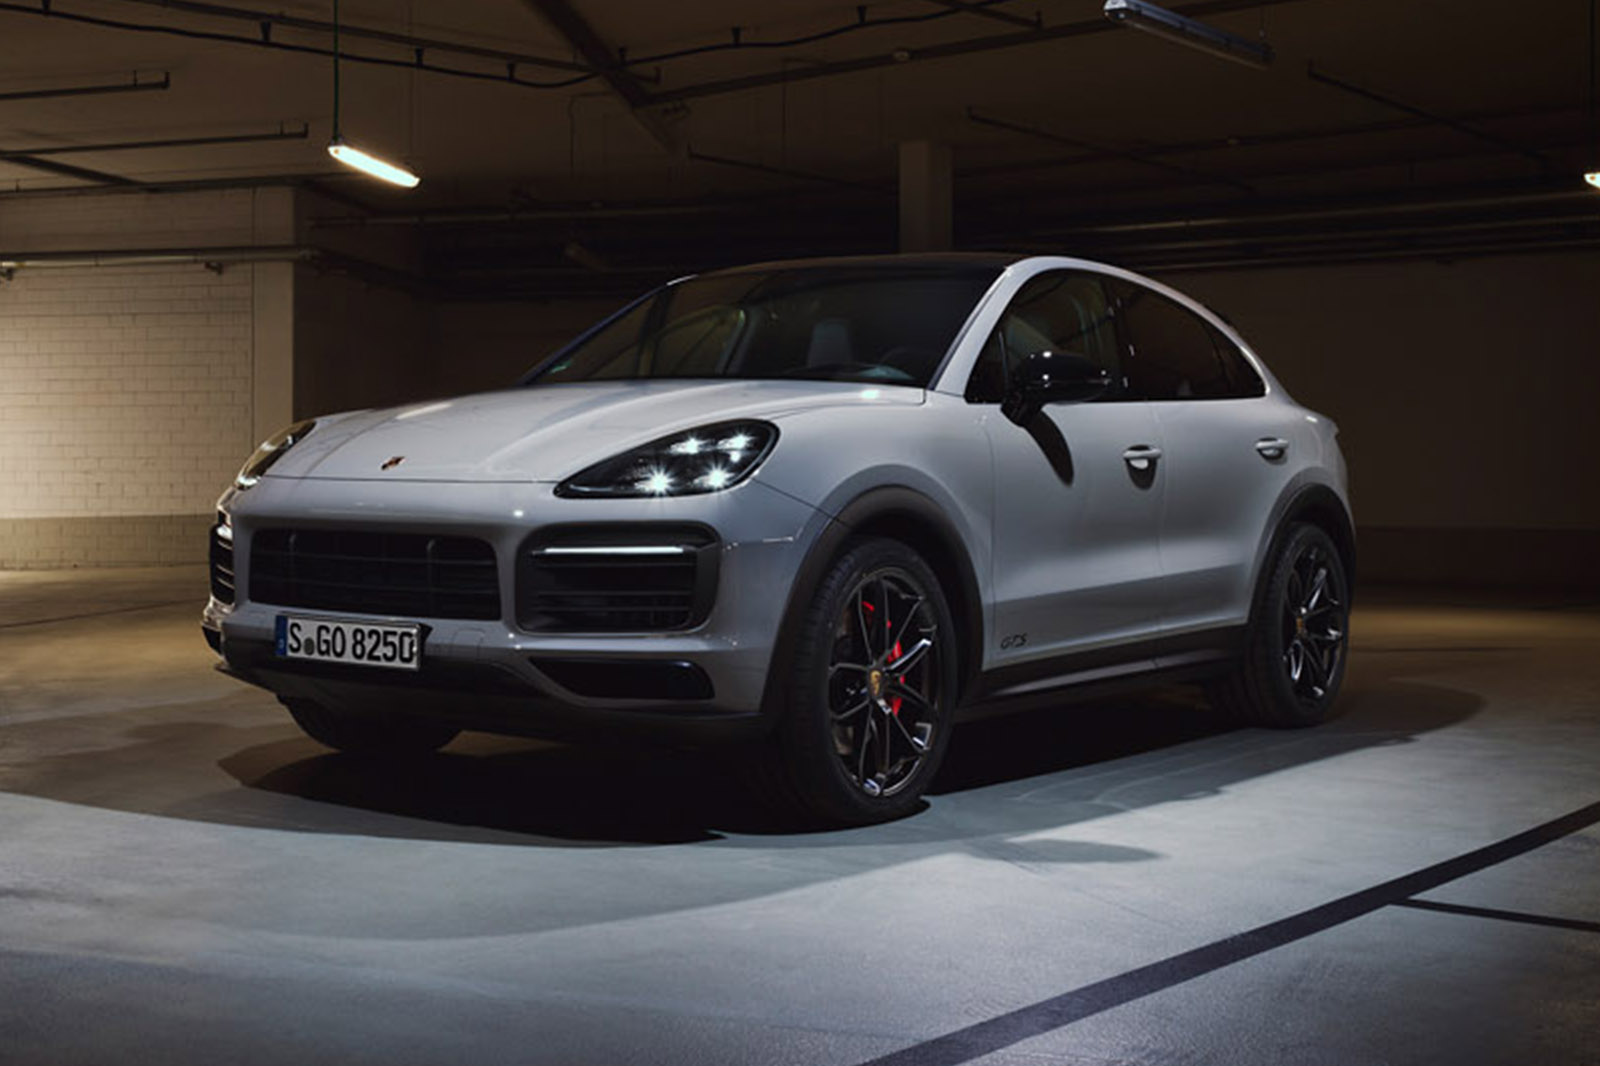 New Porsche Cayenne Gts Revealed With 454bhp V8 Autocar